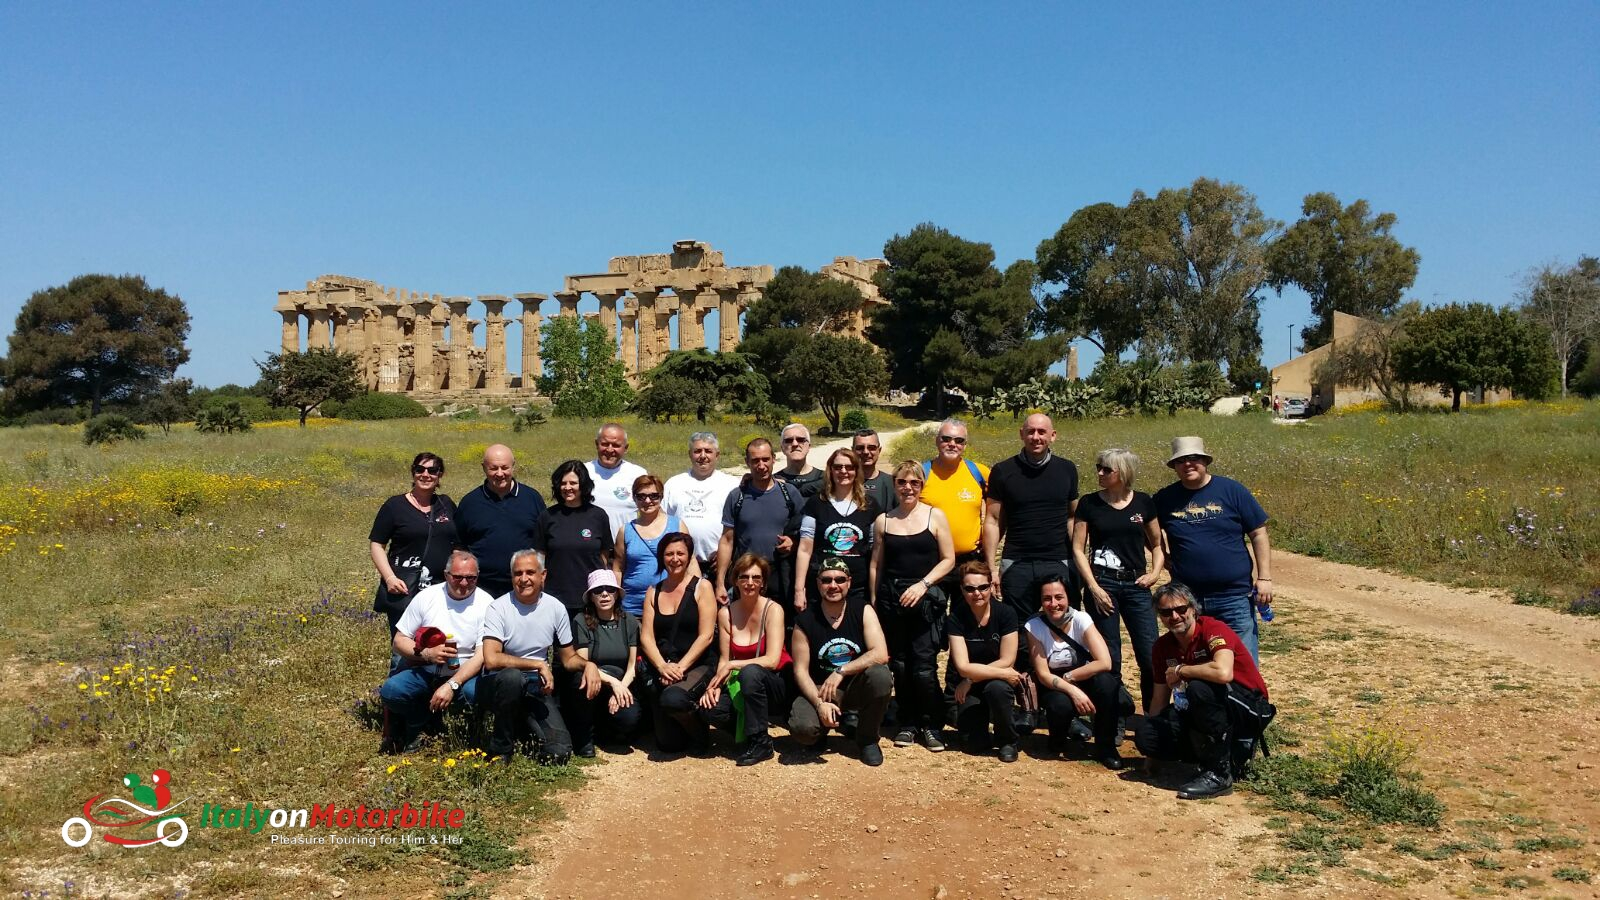 A groupe of bikers in front of a Roman temple on one of our motorcycle tour in Italy